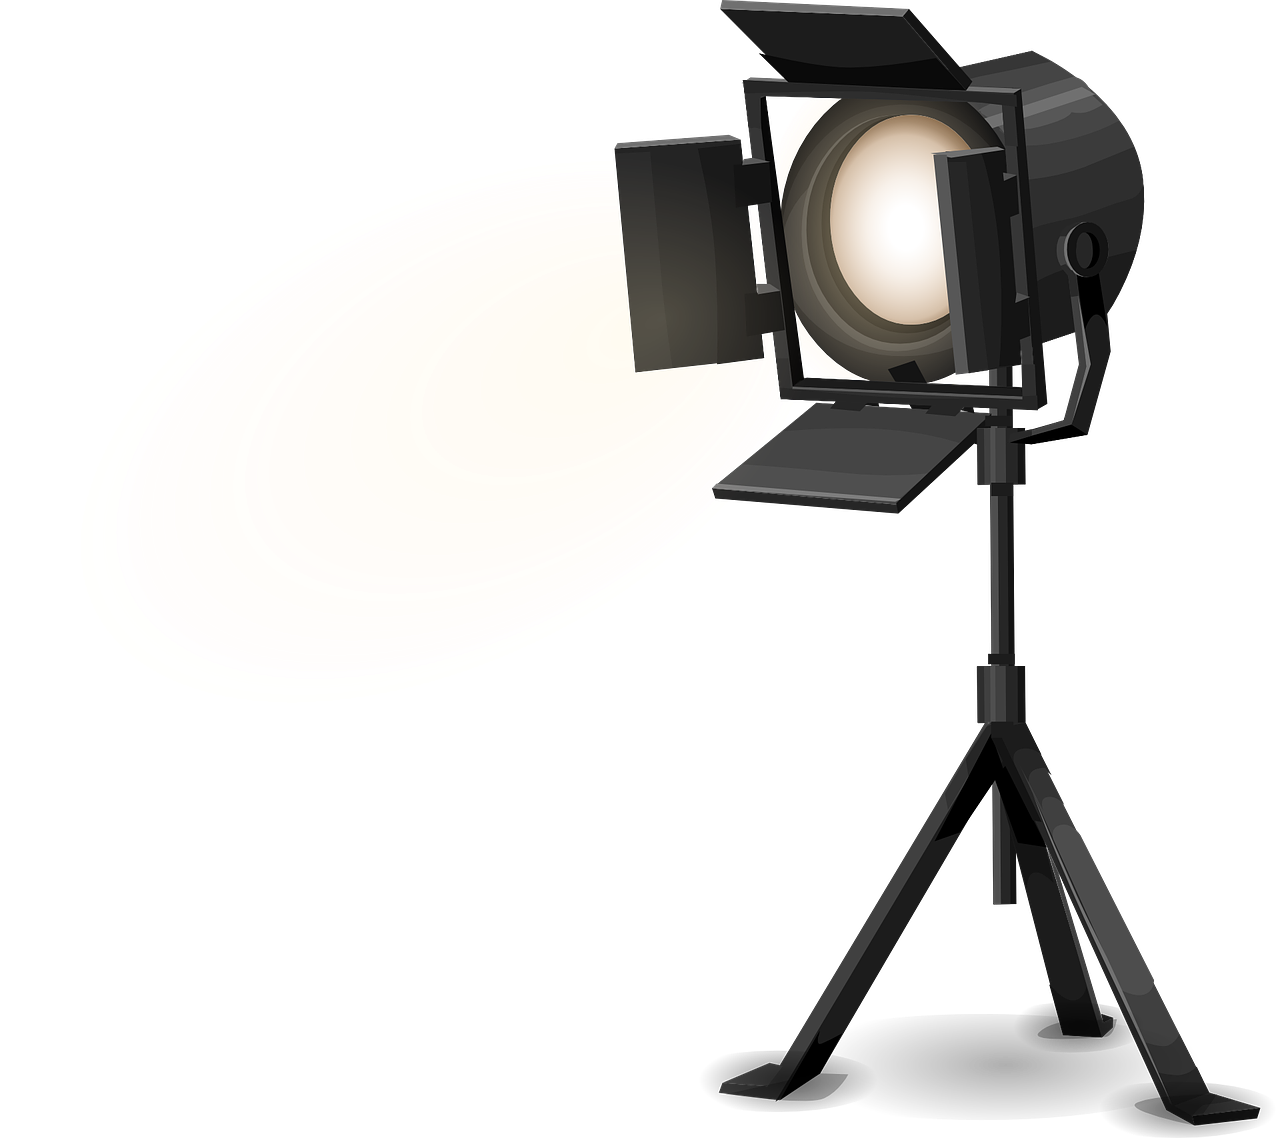 Photography studio png. What kind of lighting